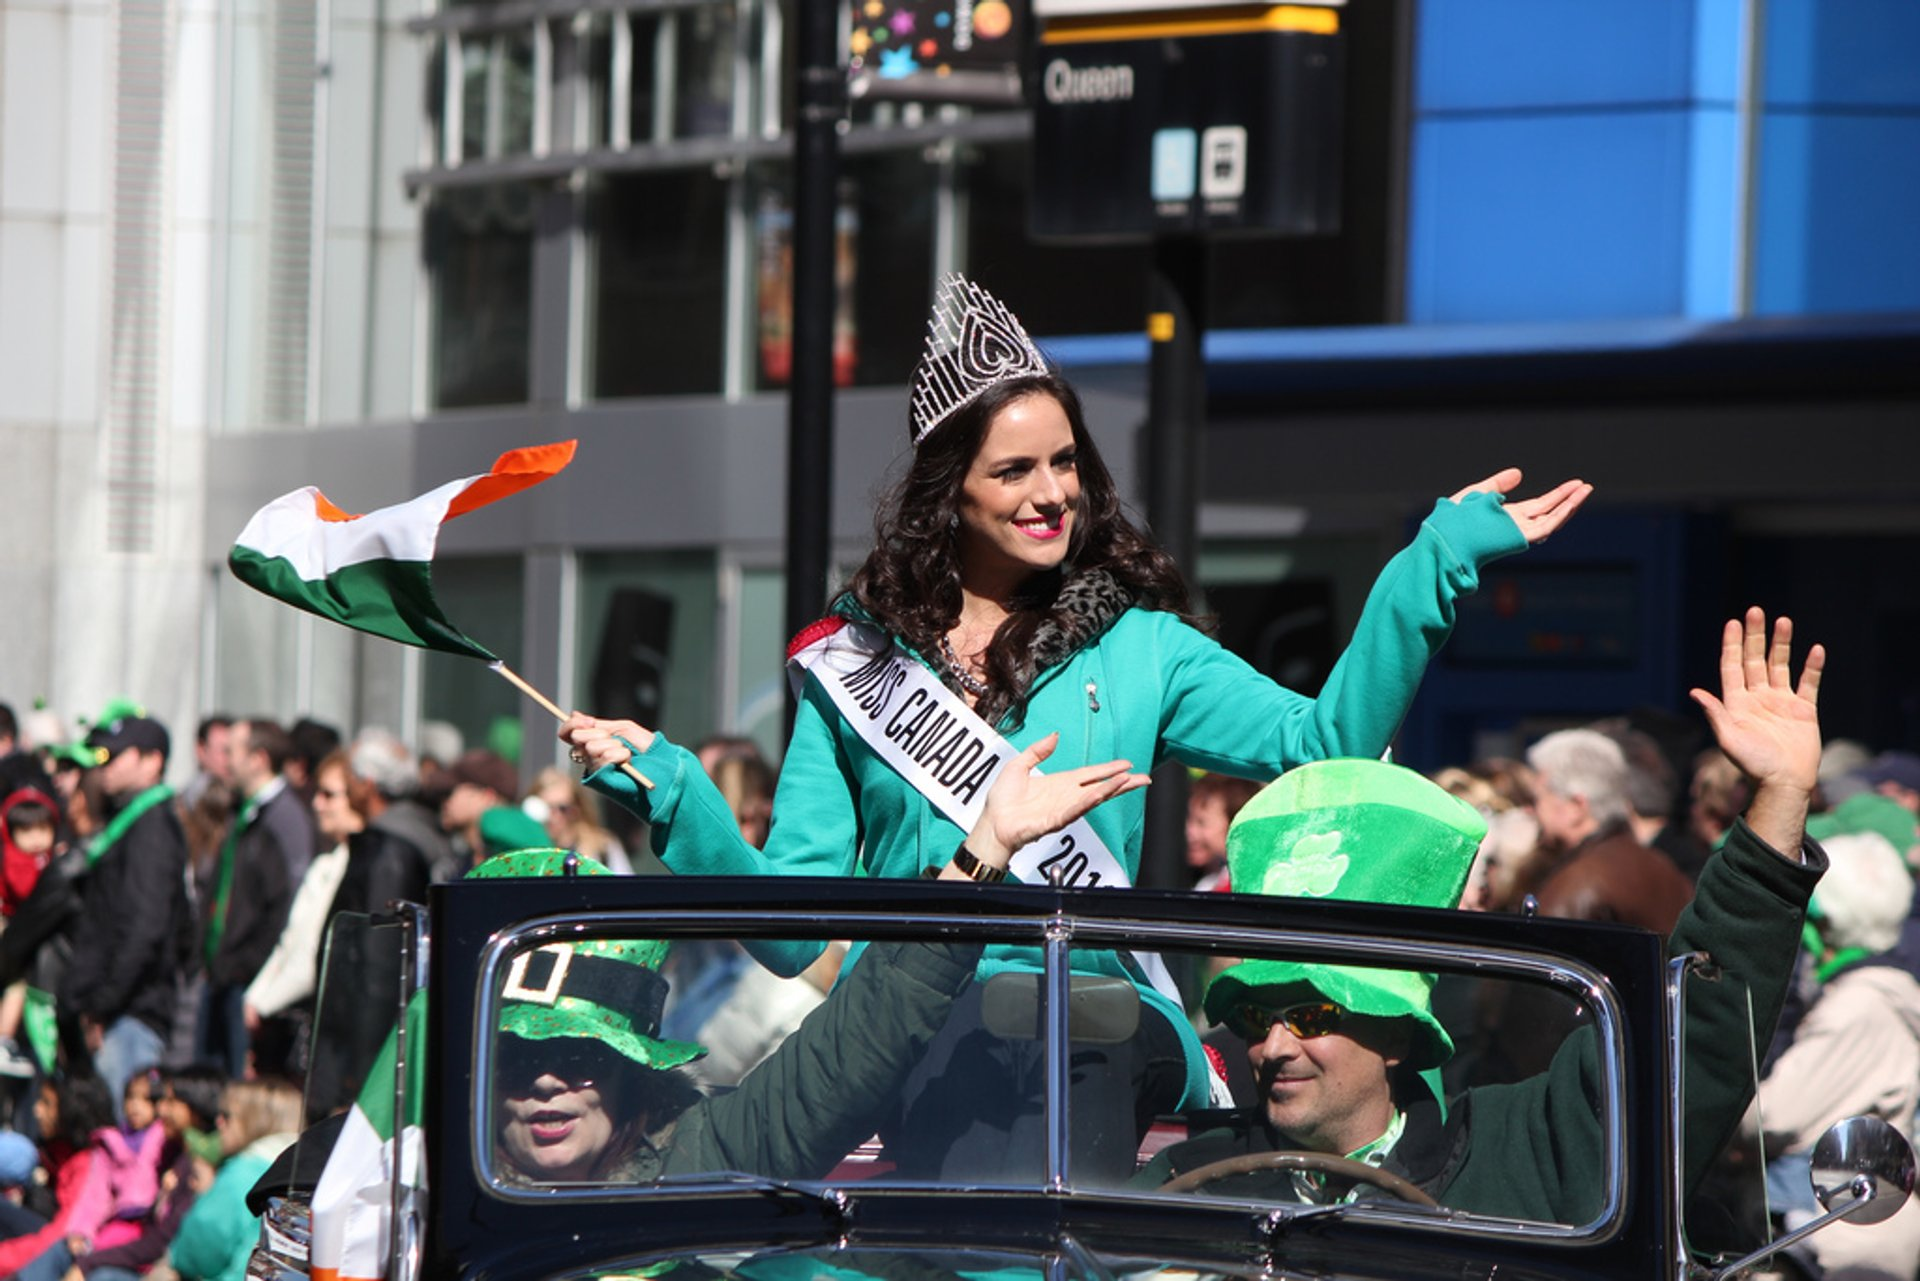 St. Patrick's Day Parade in Toronto 2019 - Best Time